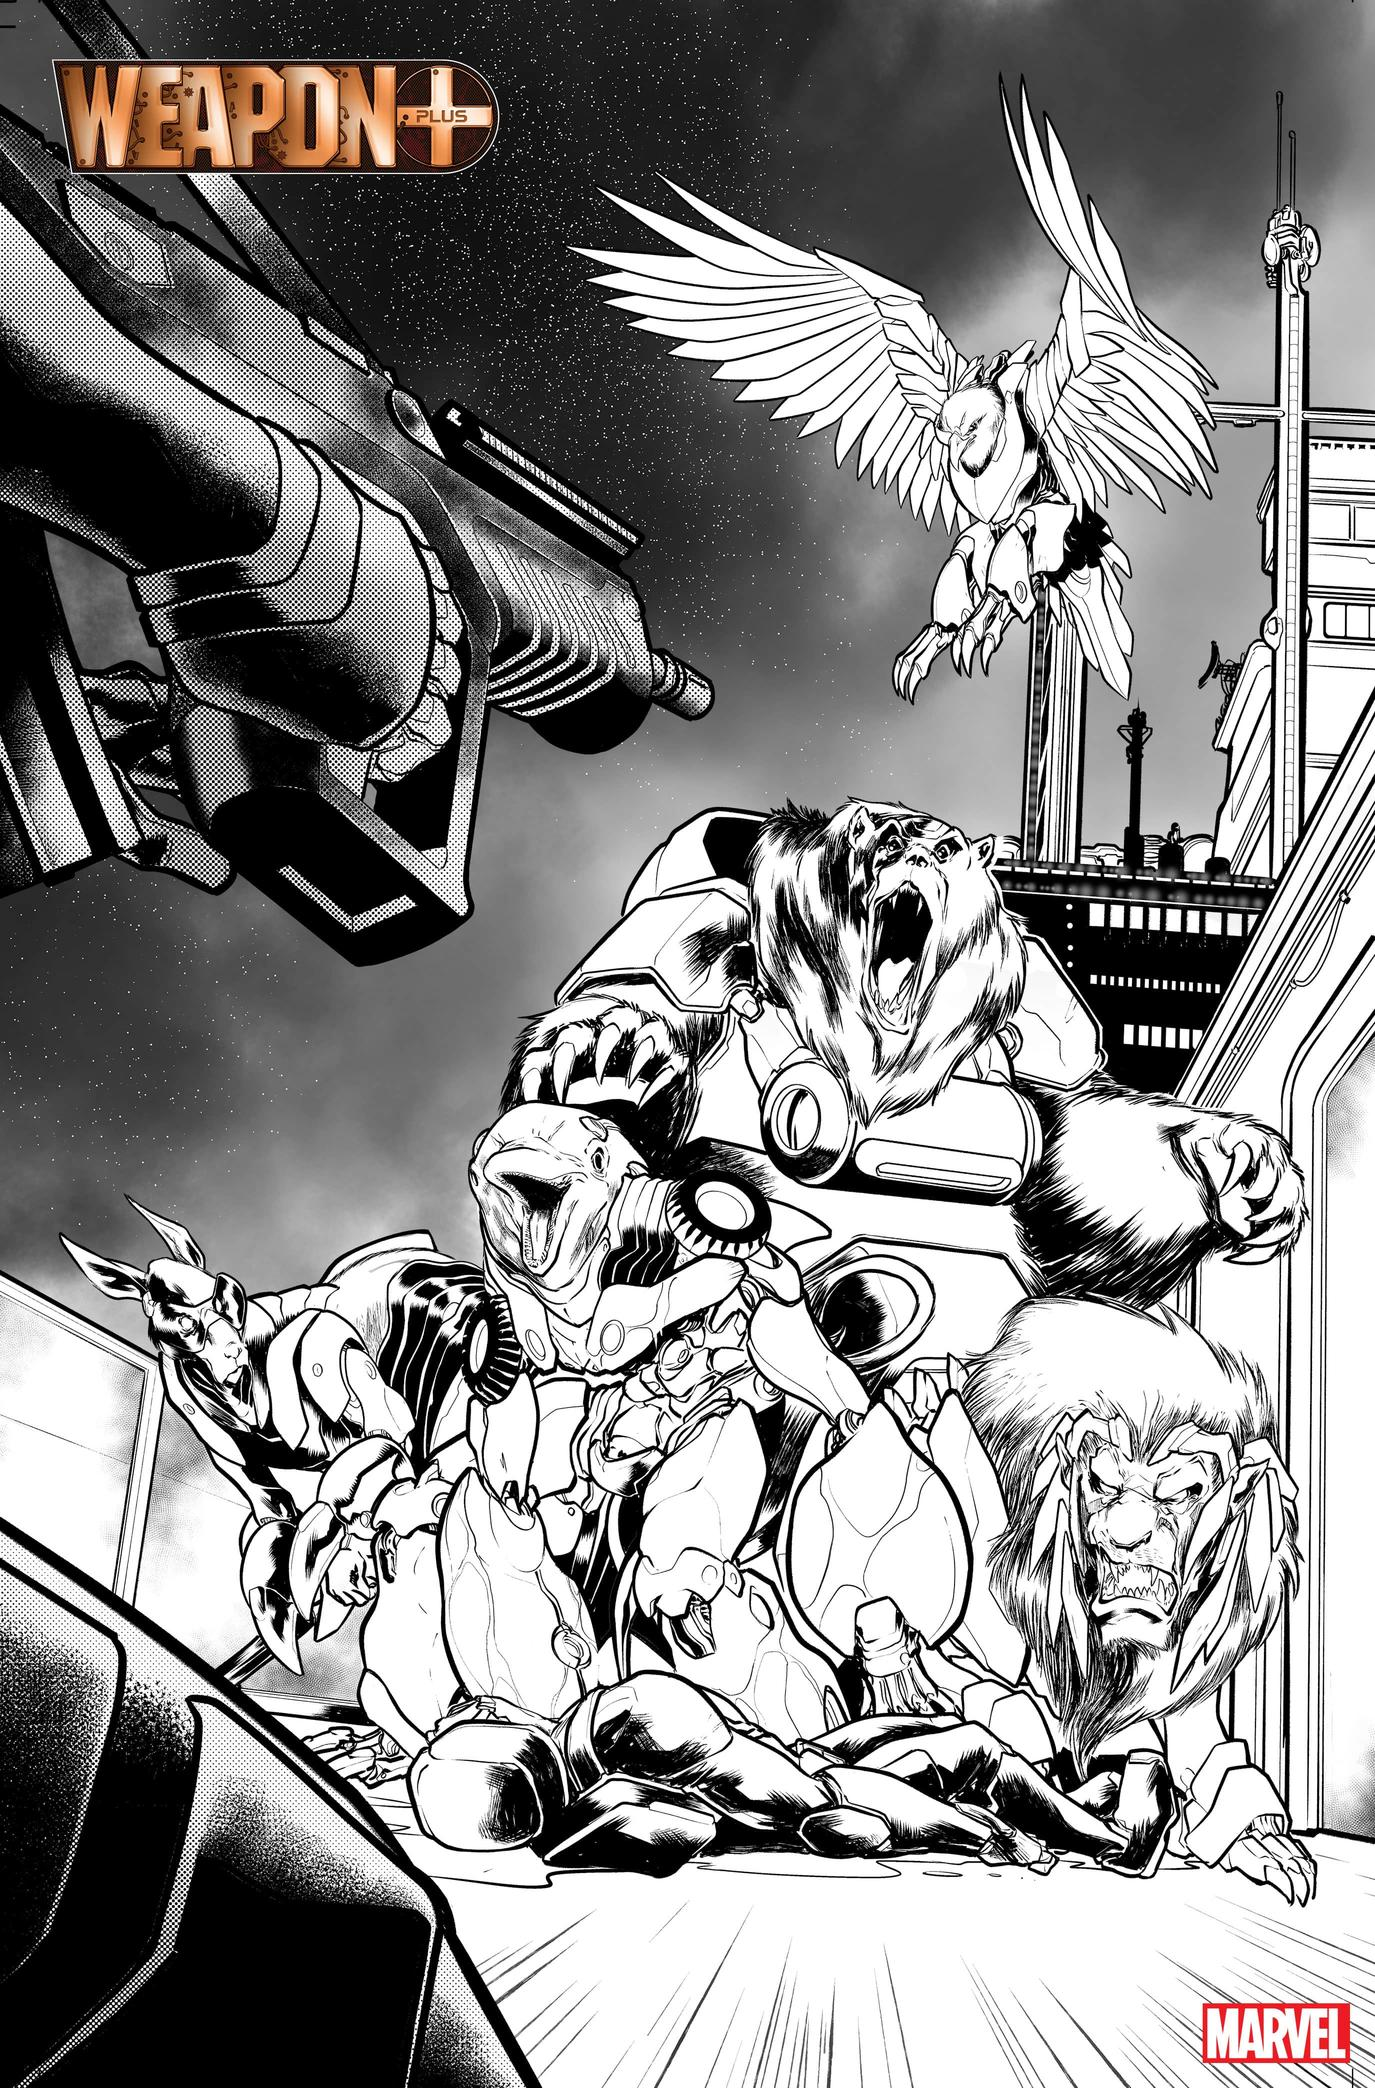 WEAPON PLUS: WORLD WAR IV preview art by Georges Jeanty